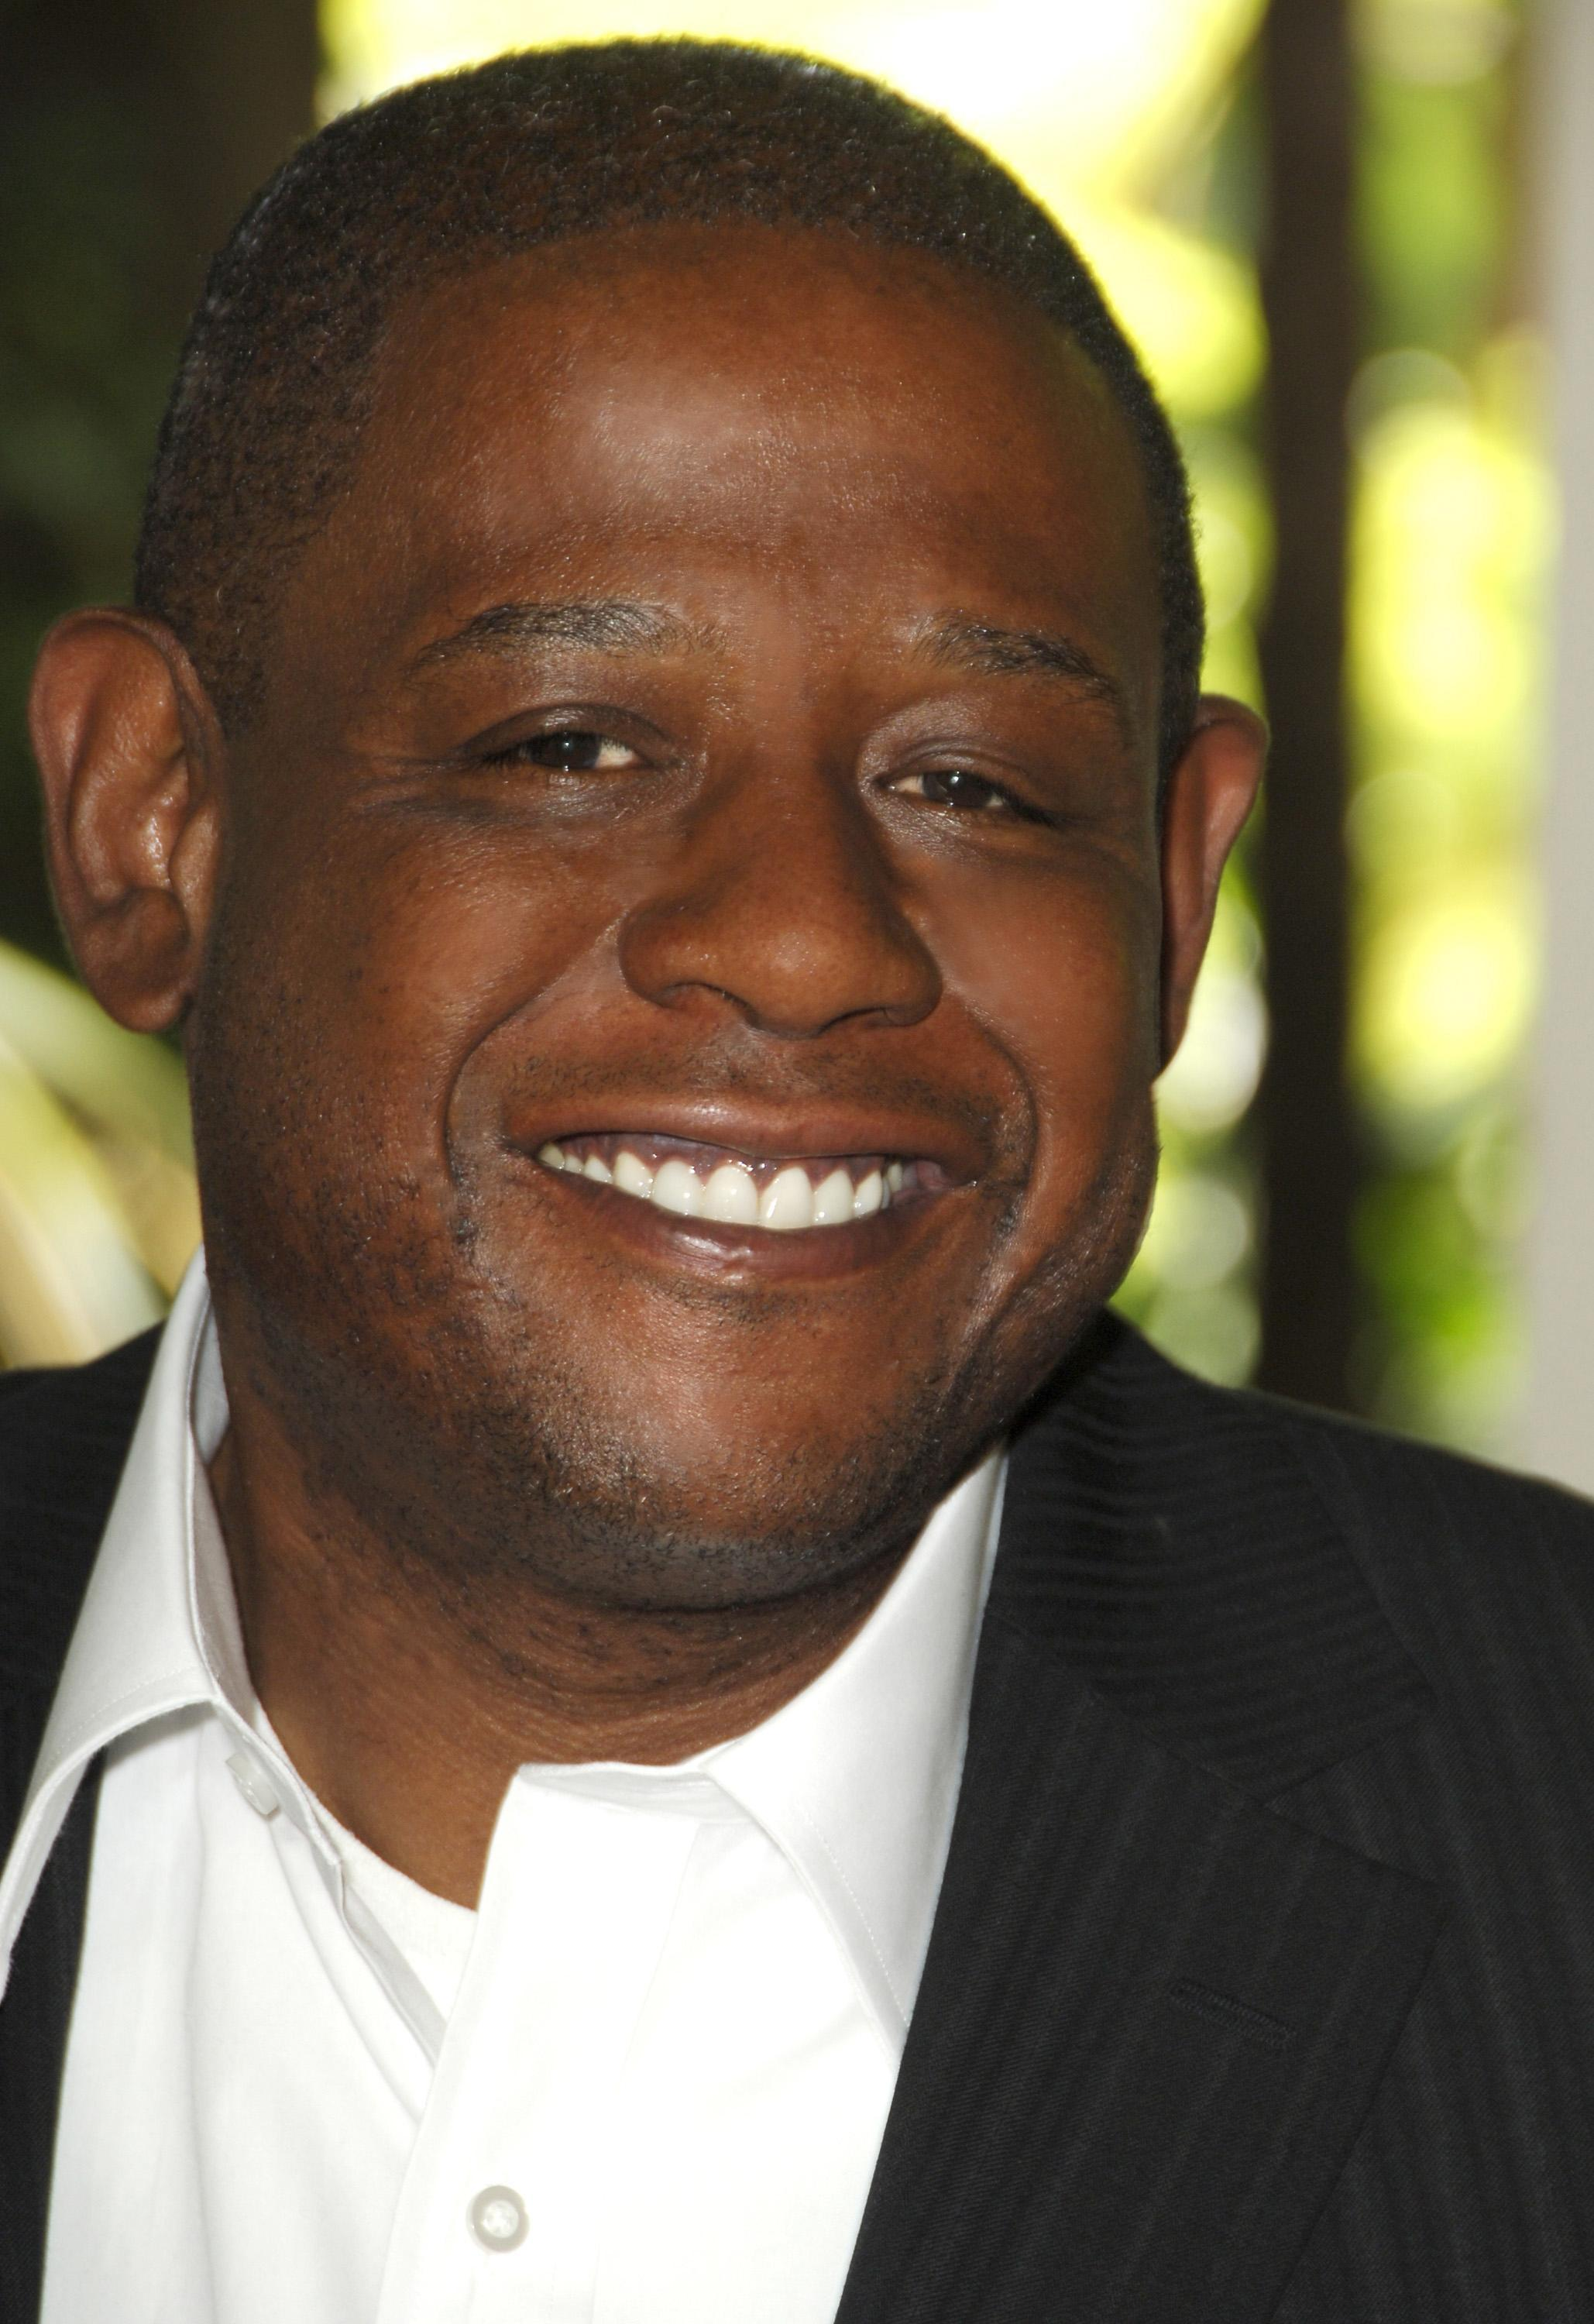 Forest Whitaker Wallpapers High Quality | Download Free